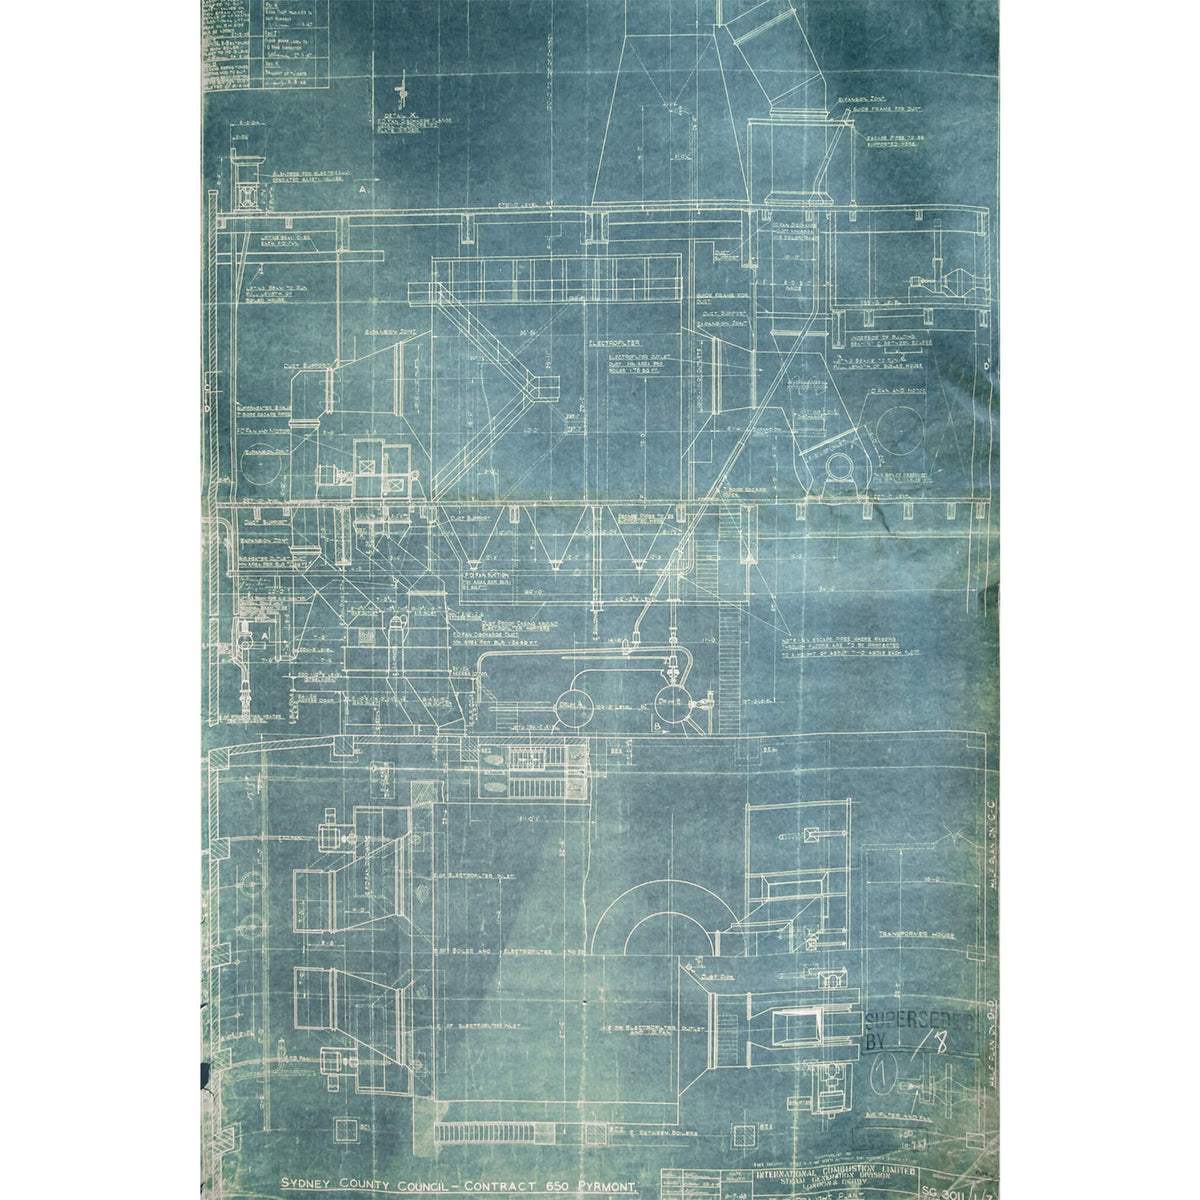 Boiler Blueprint | White Bay Power Station Fine Art Print - Lost Collective Shop